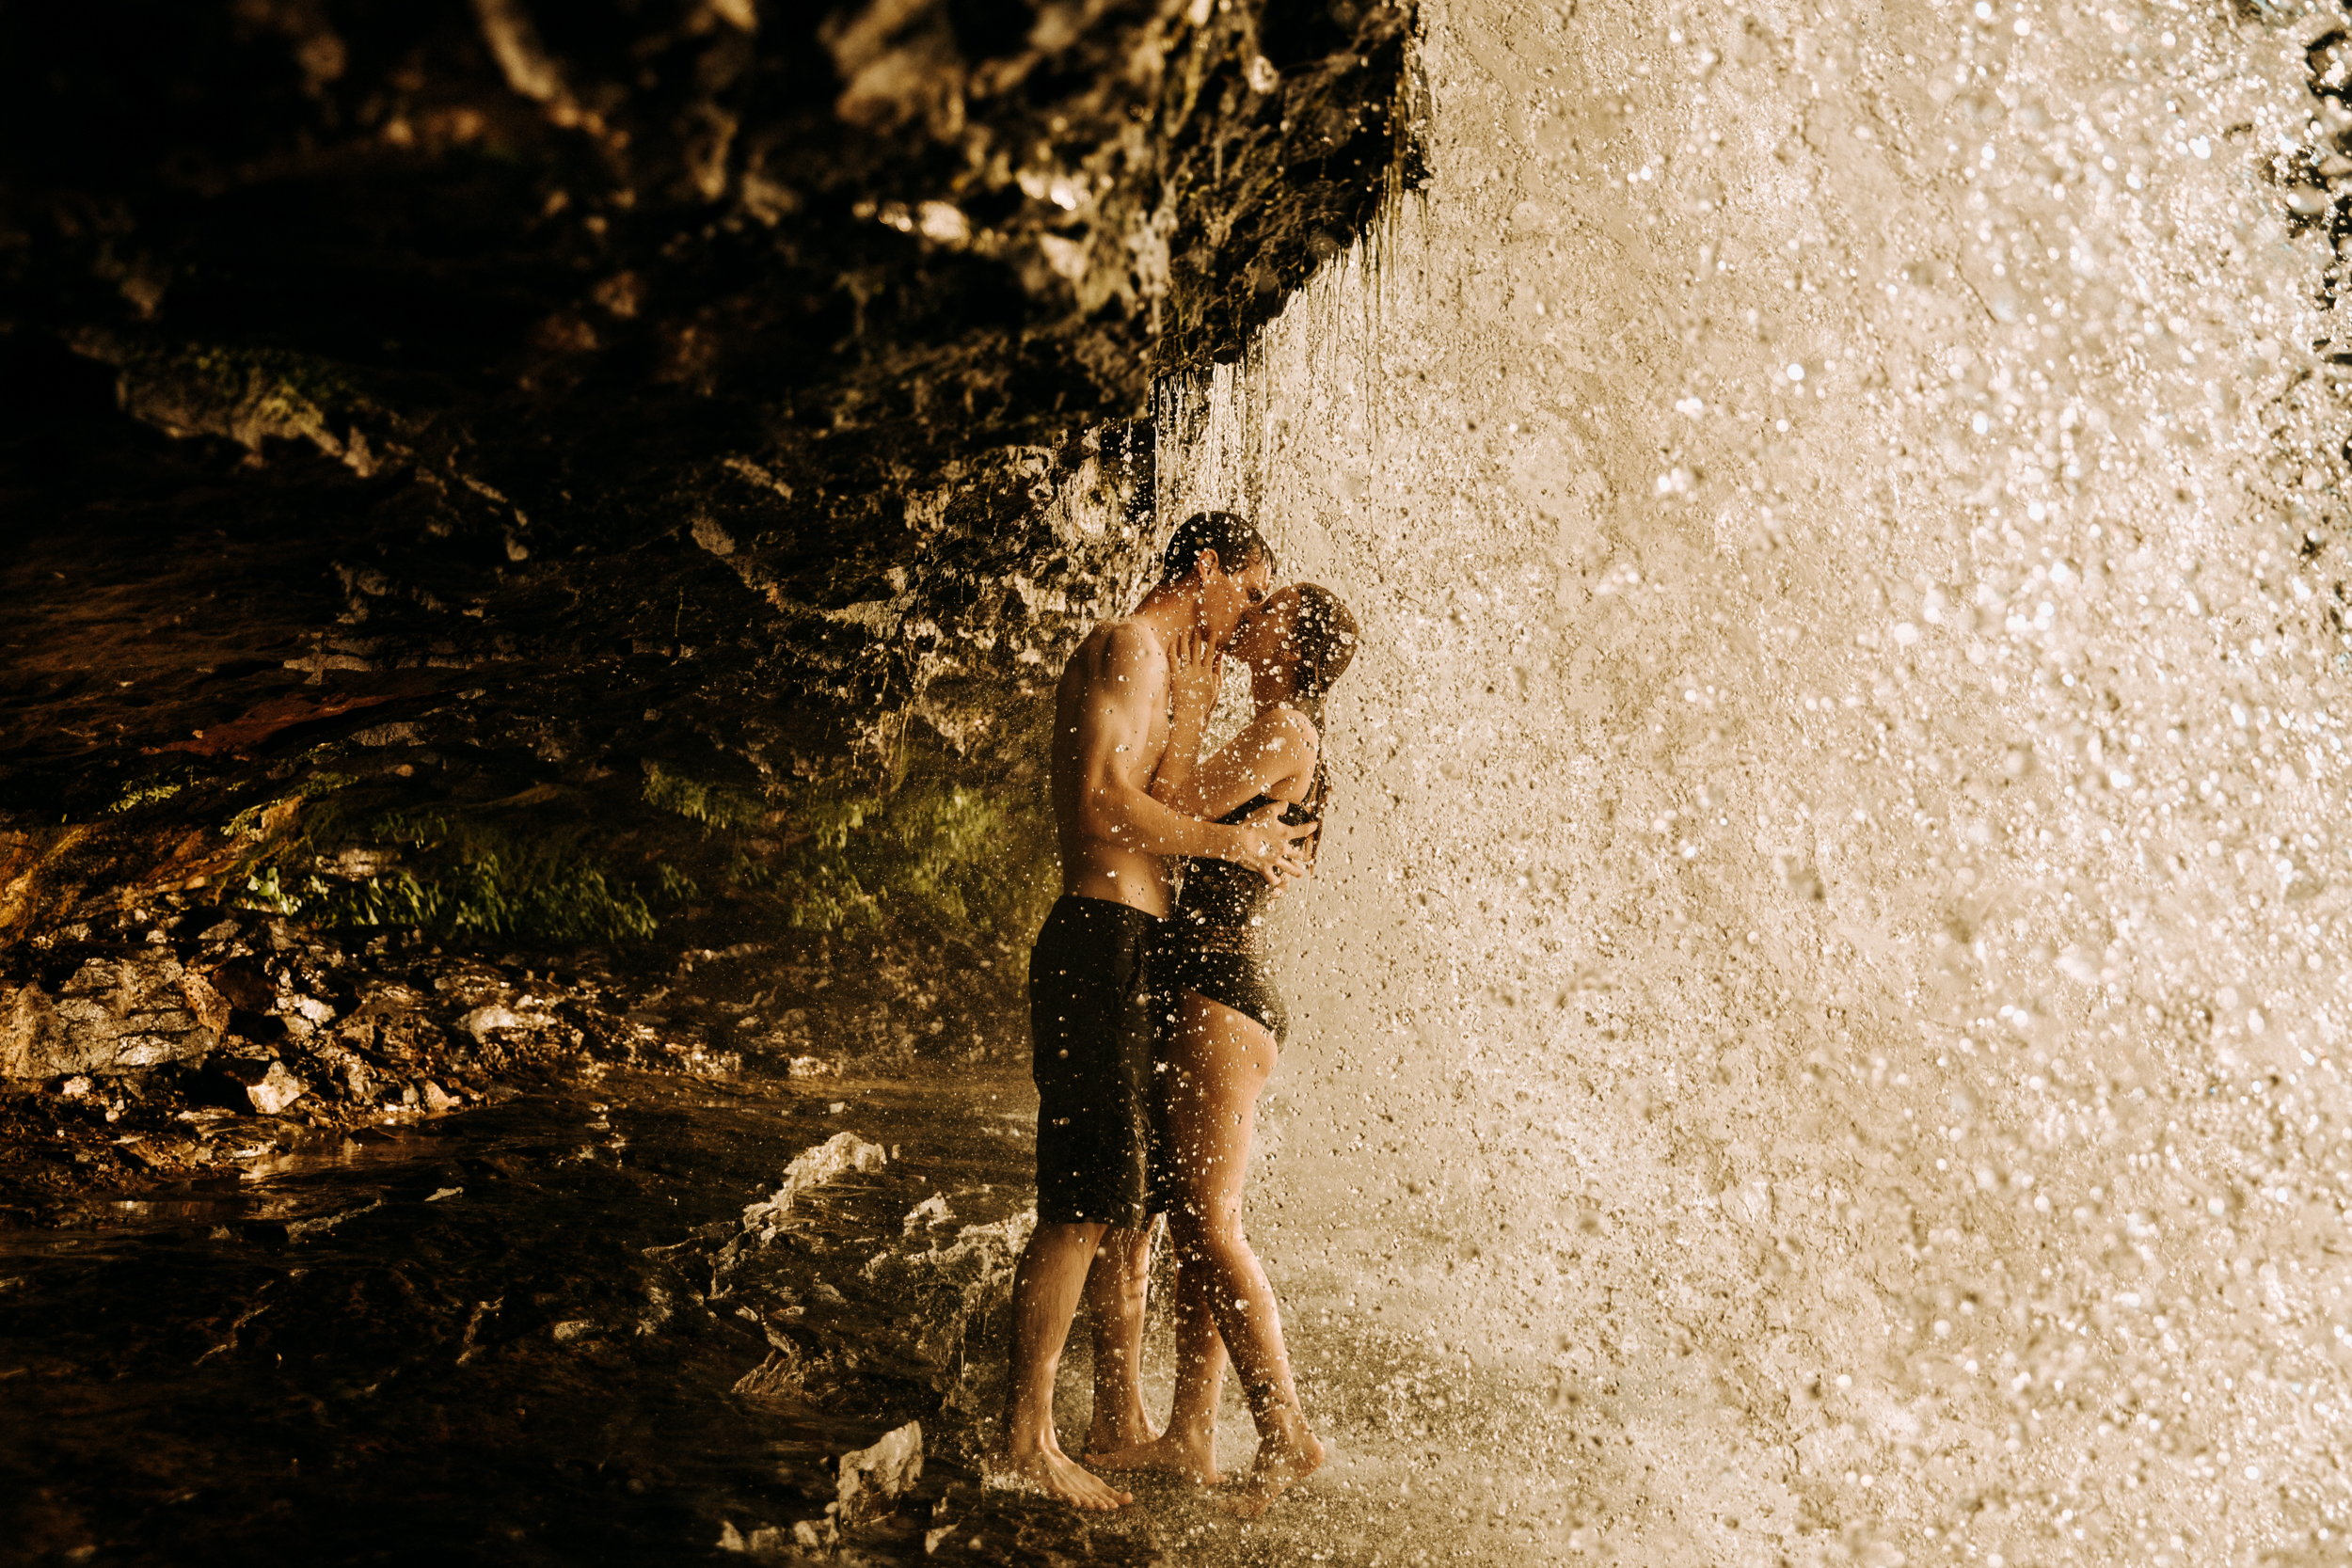 Adventure photographer captures image of a couple in kissing under a waterfall.